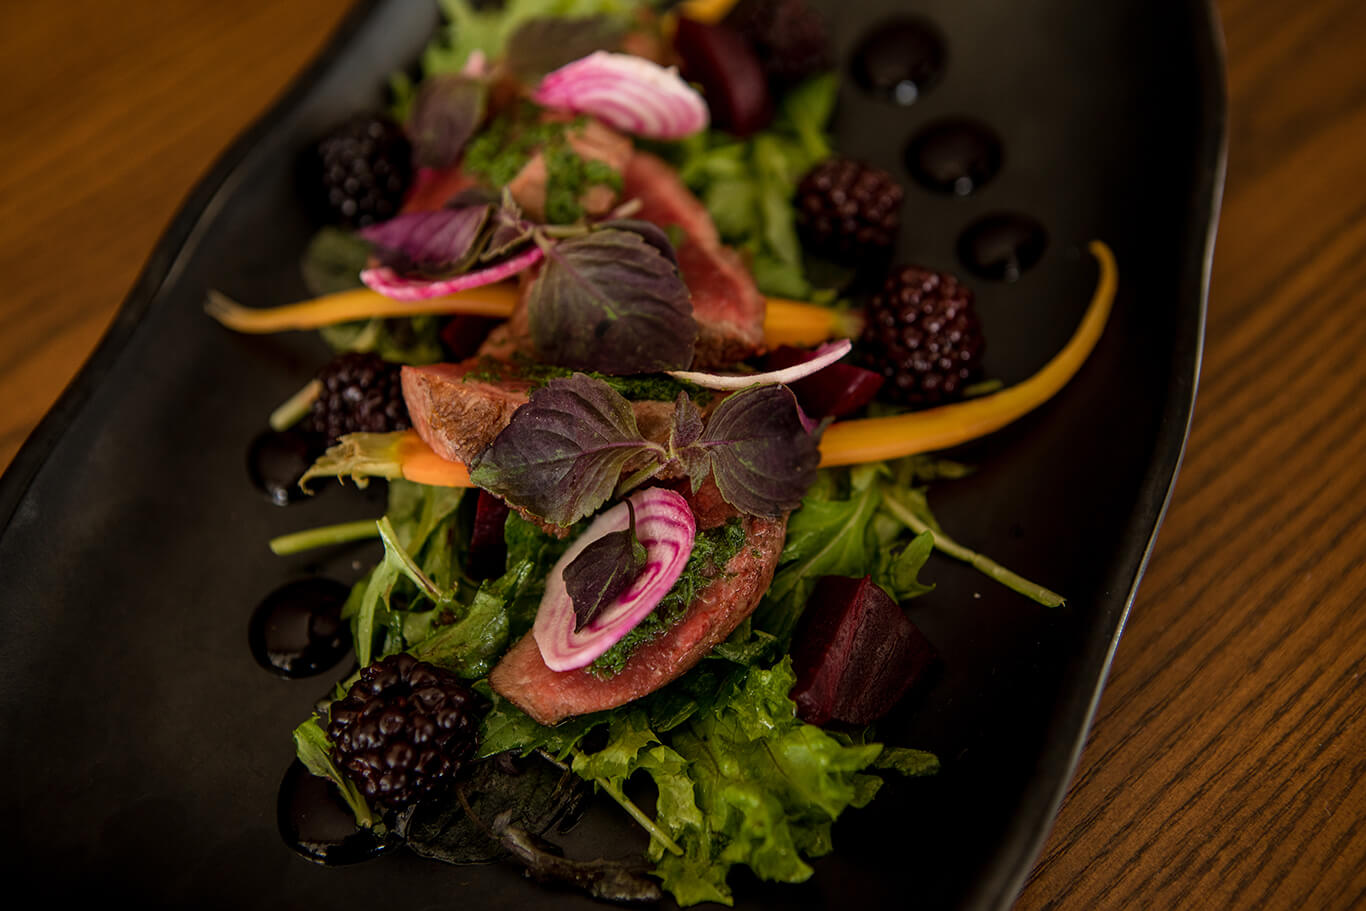 A plate of salad greens topped with Venison and surrounded by blackberries and beetroot.